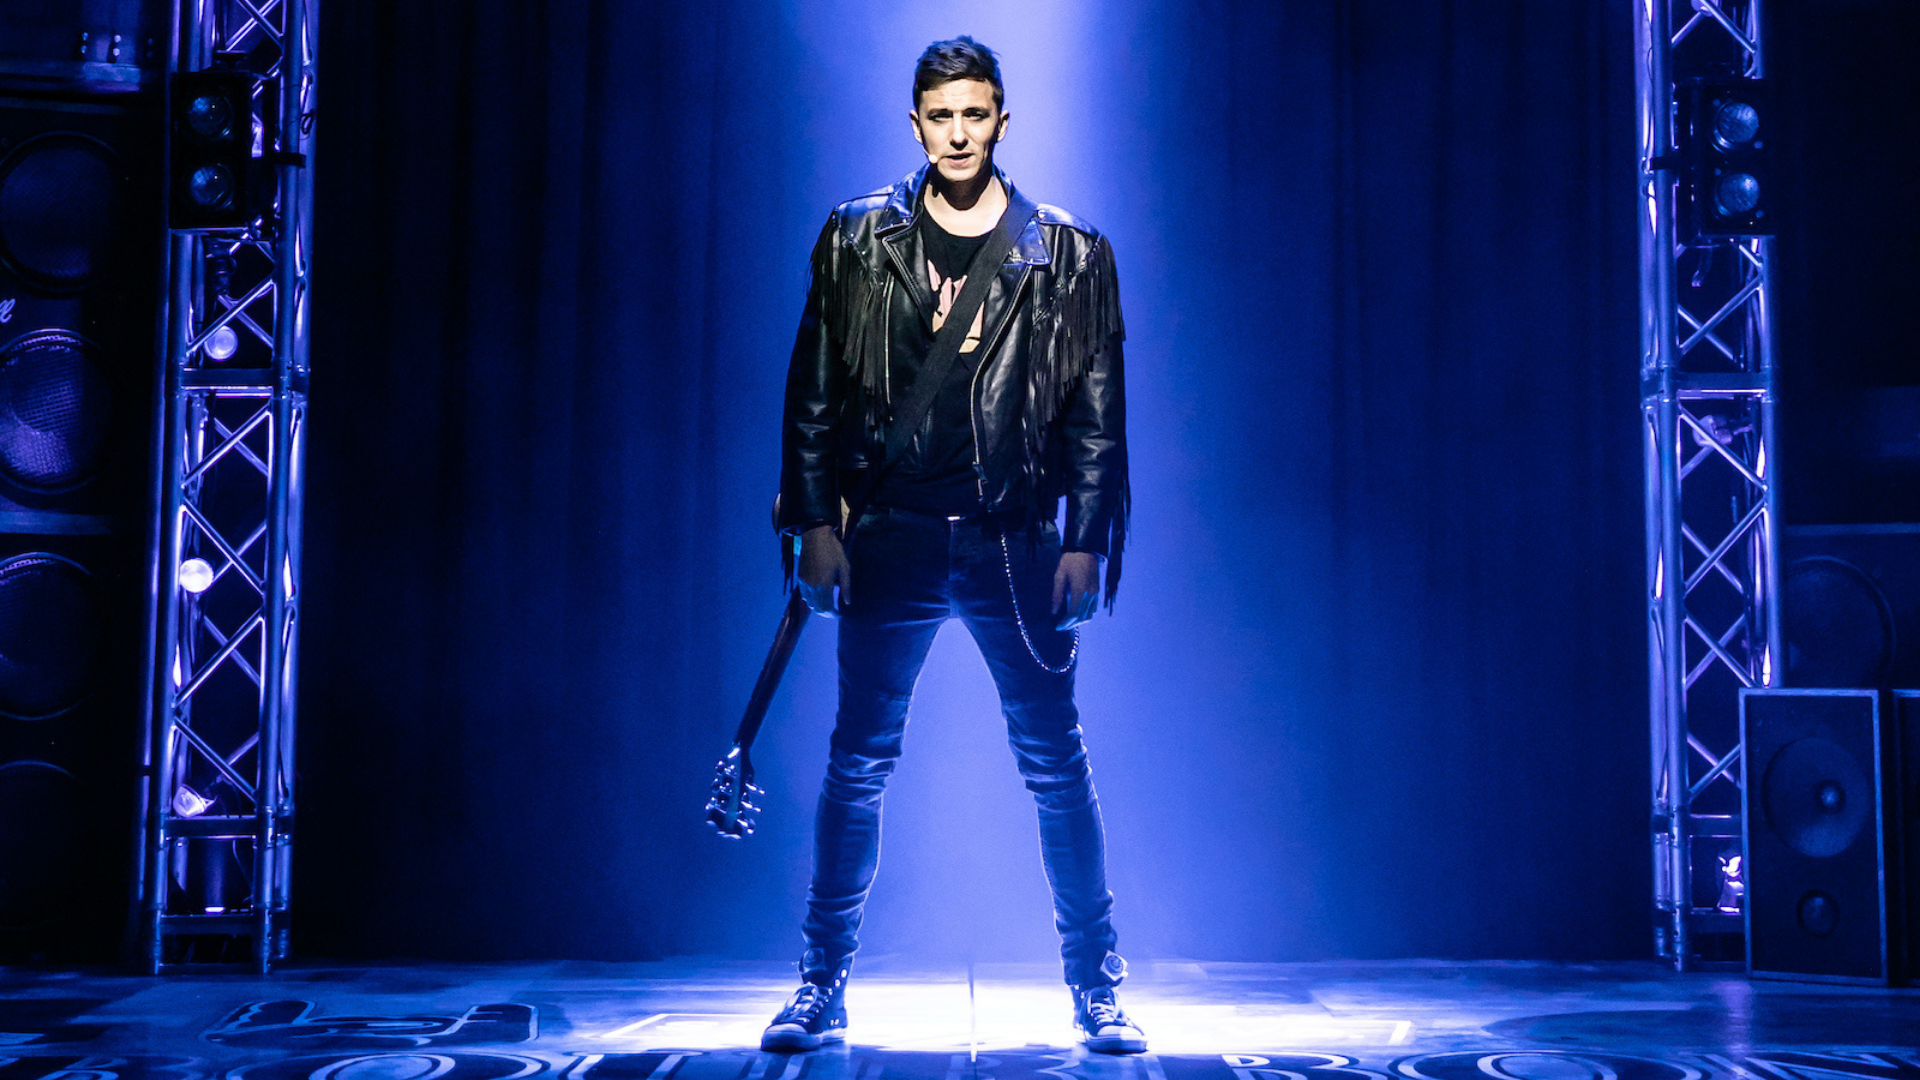 Rock of Ages production shot: the lead male actor stand alone on stage in a spotlight, carrying a guitar